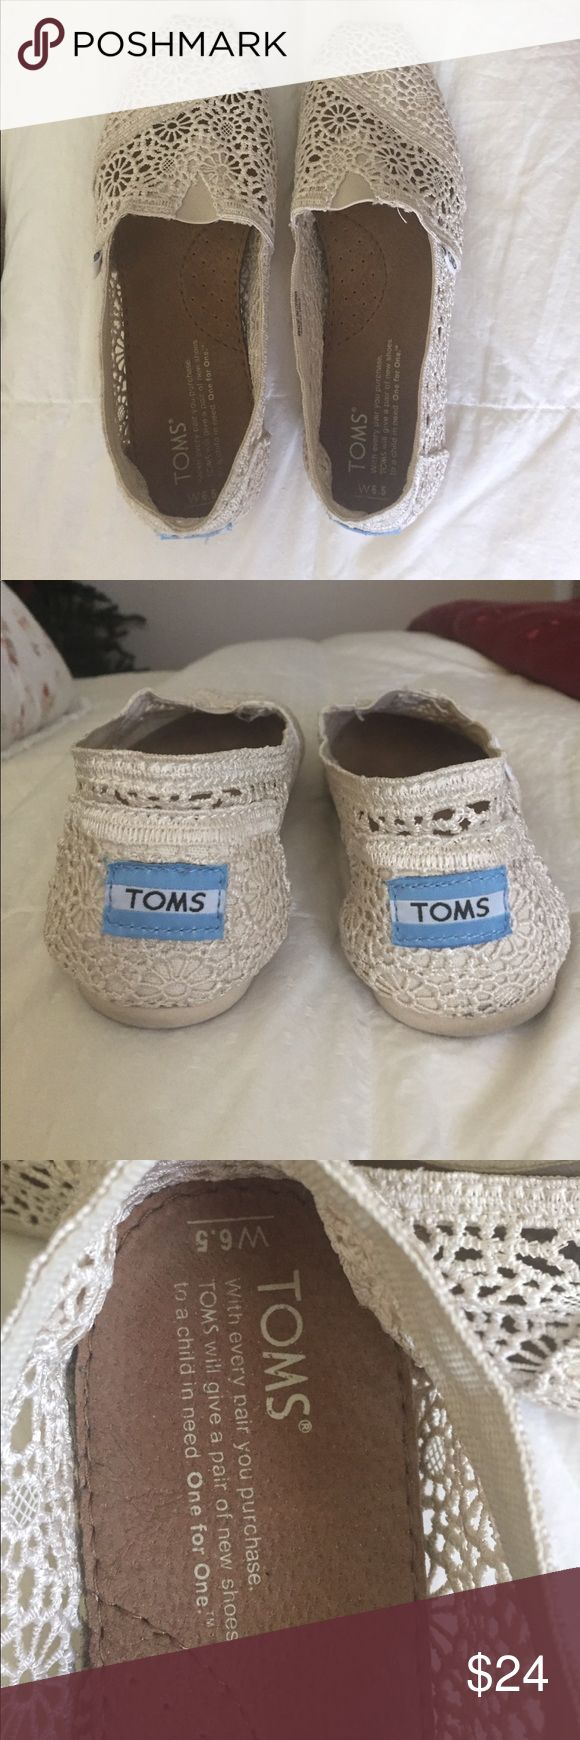 """Lace toms This shoe is an ivory lace toms. They have been gently worn a few times. They don't have any tears or stains. Size 6.5 . The bottom sole measures 9.5 by 3"""". TOMS Shoes Flats & Loafers"""